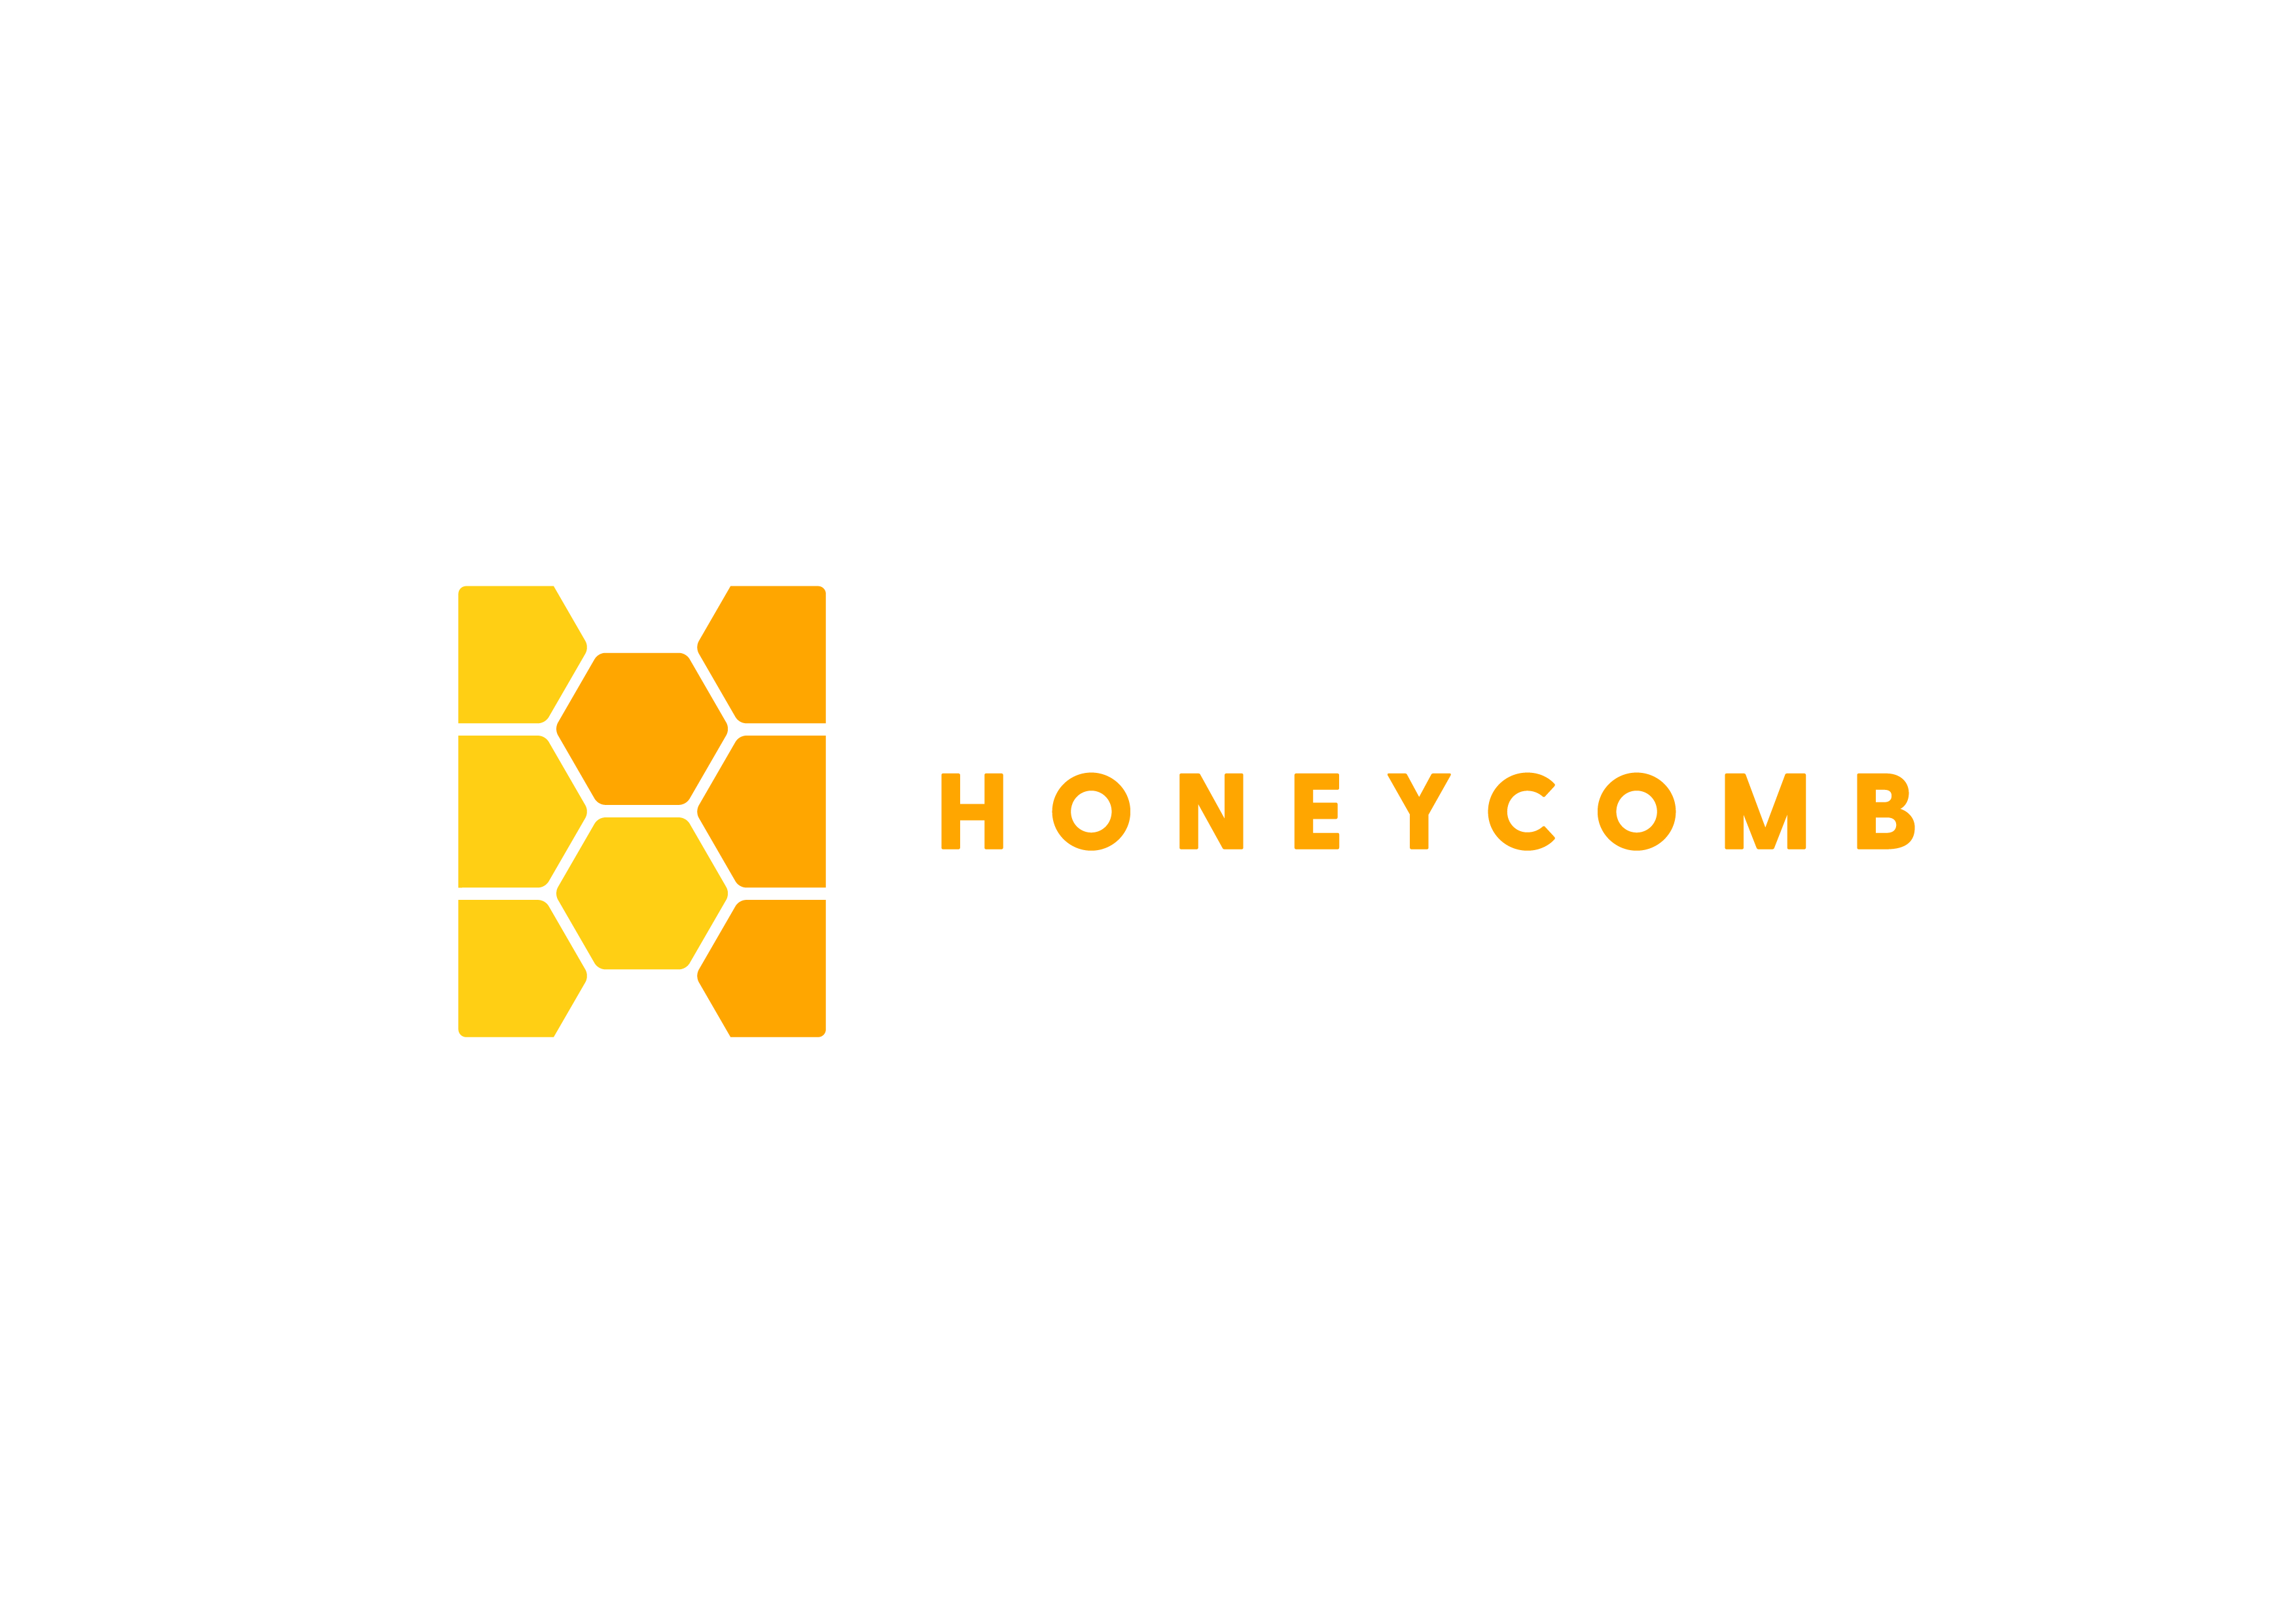 Honeycomb Jobs Ltd